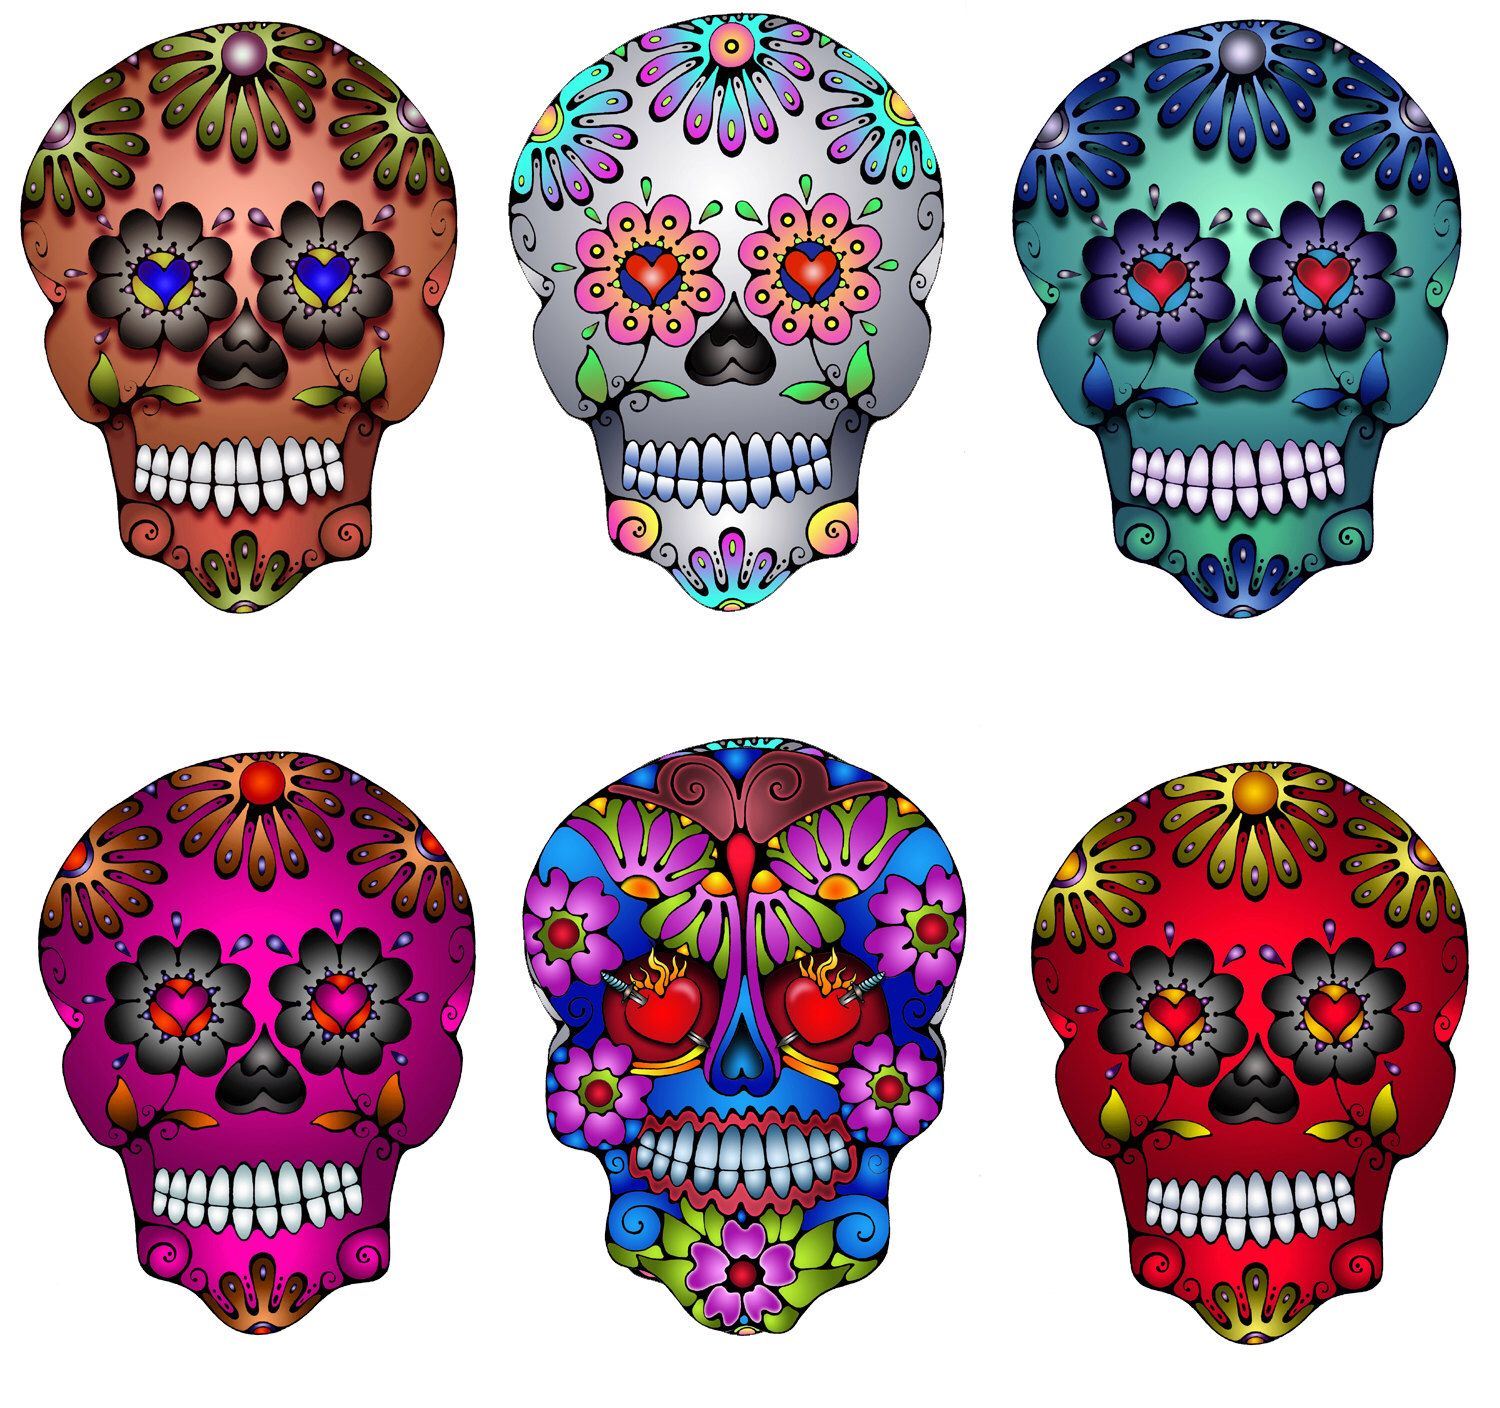 Mexican Folk Art Silver Day of the Dead Sugar Skull Decal by HollyvisionArt on Etsy https://www.etsy.com/listing/74414907/mexican-folk-art-silver-day-of-the-dead